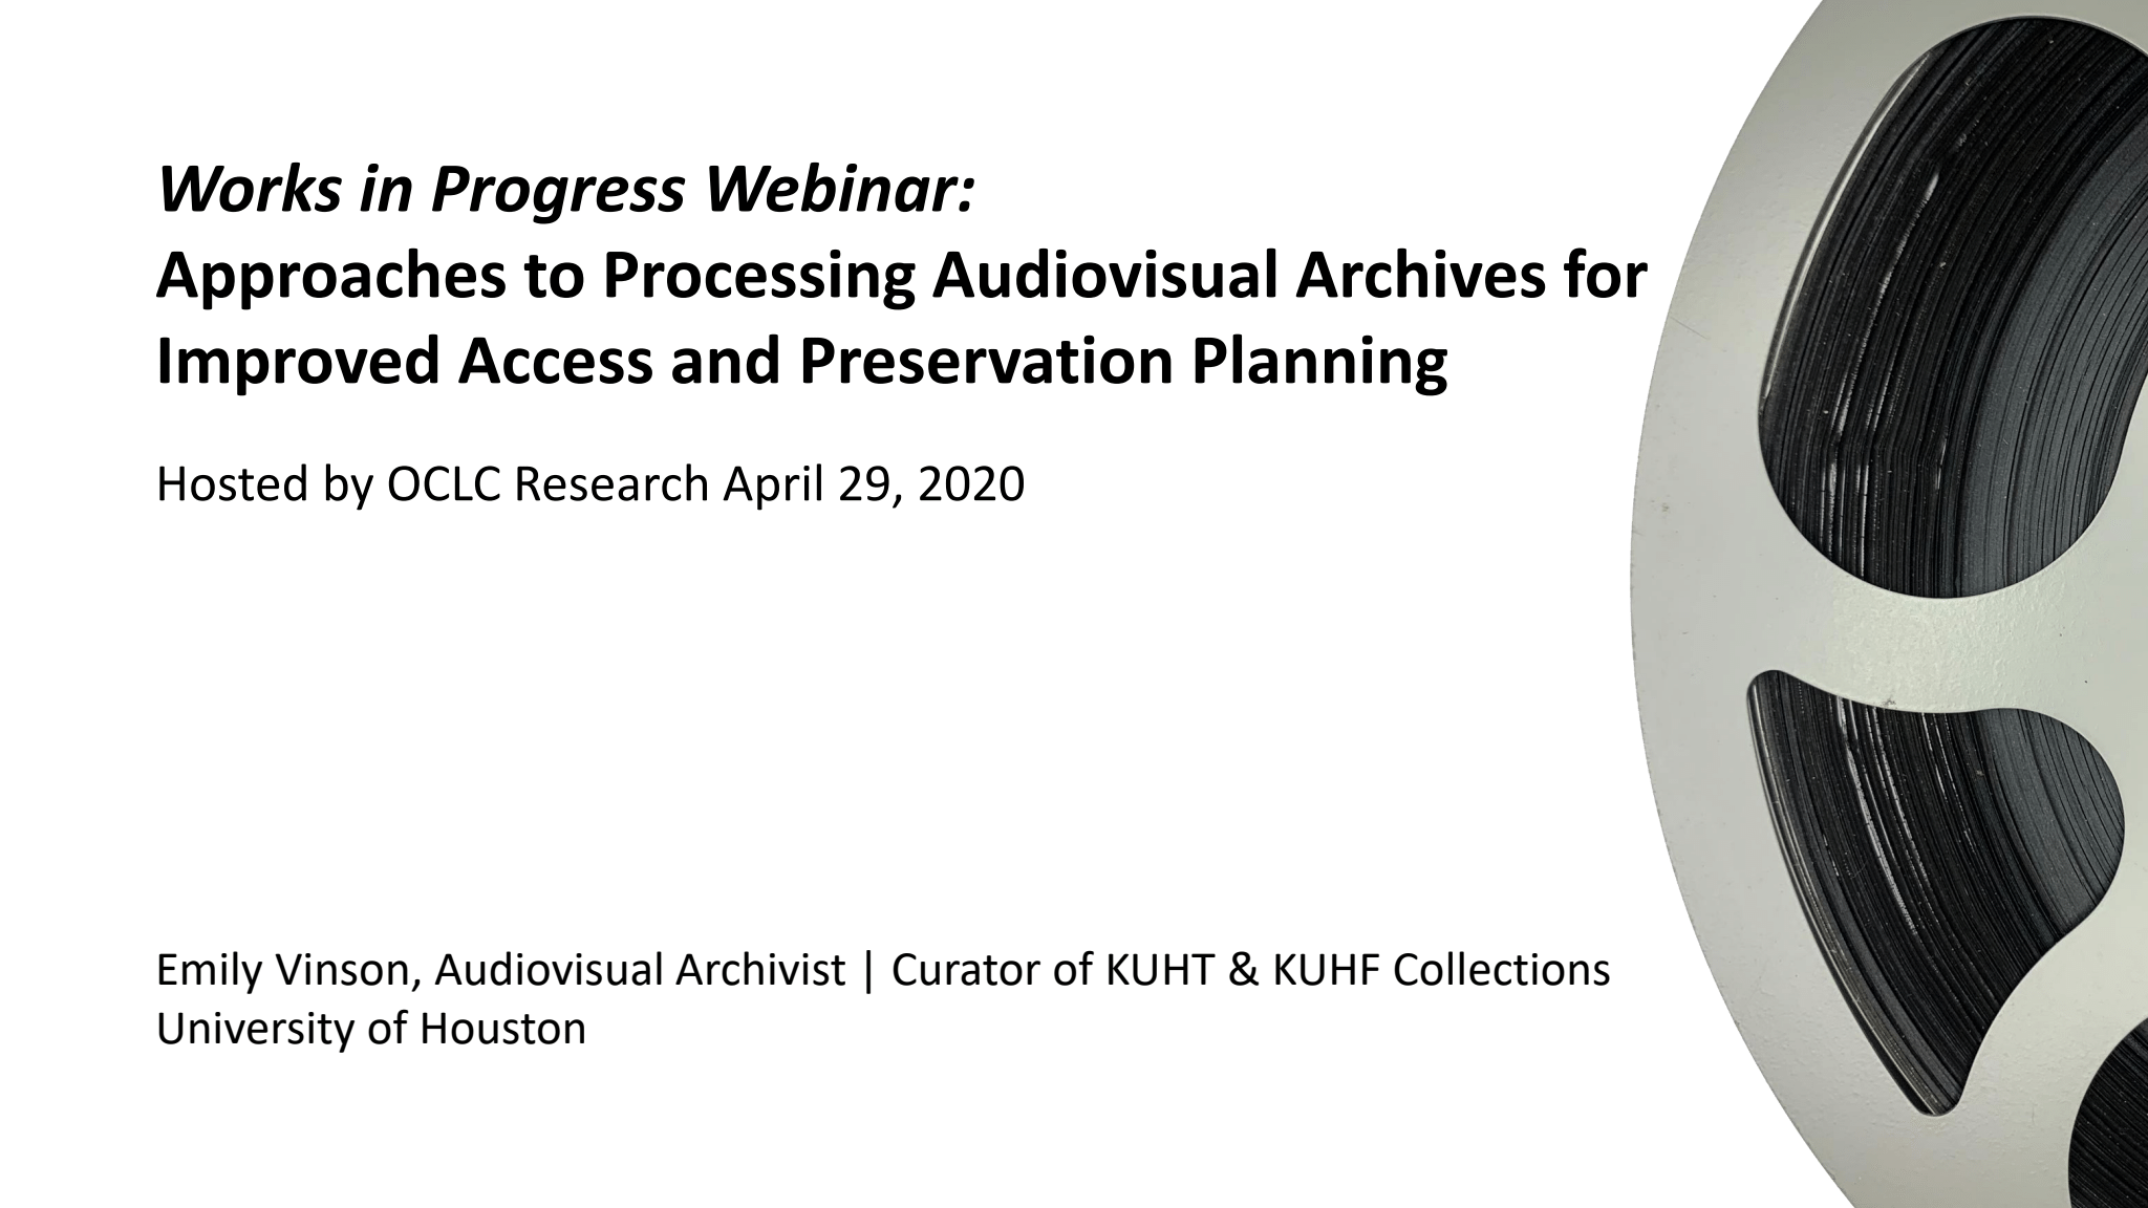 Approaches to Processing Audiovisual Archives for Improved Access and Preservation Planning